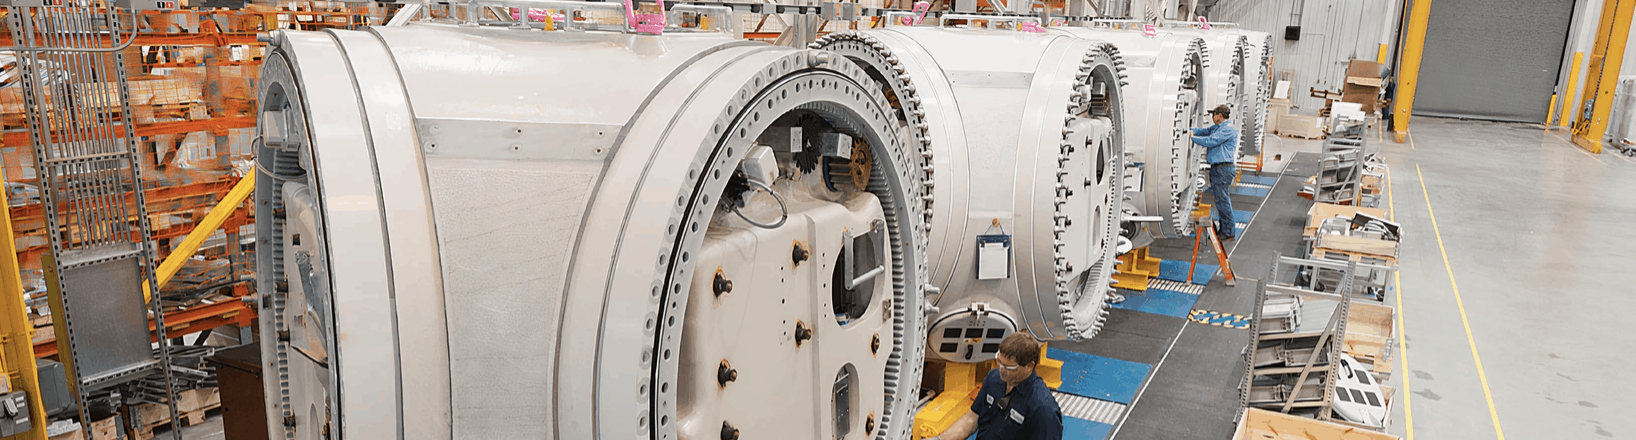 list of the largest mechanical enigneering companies in germany research